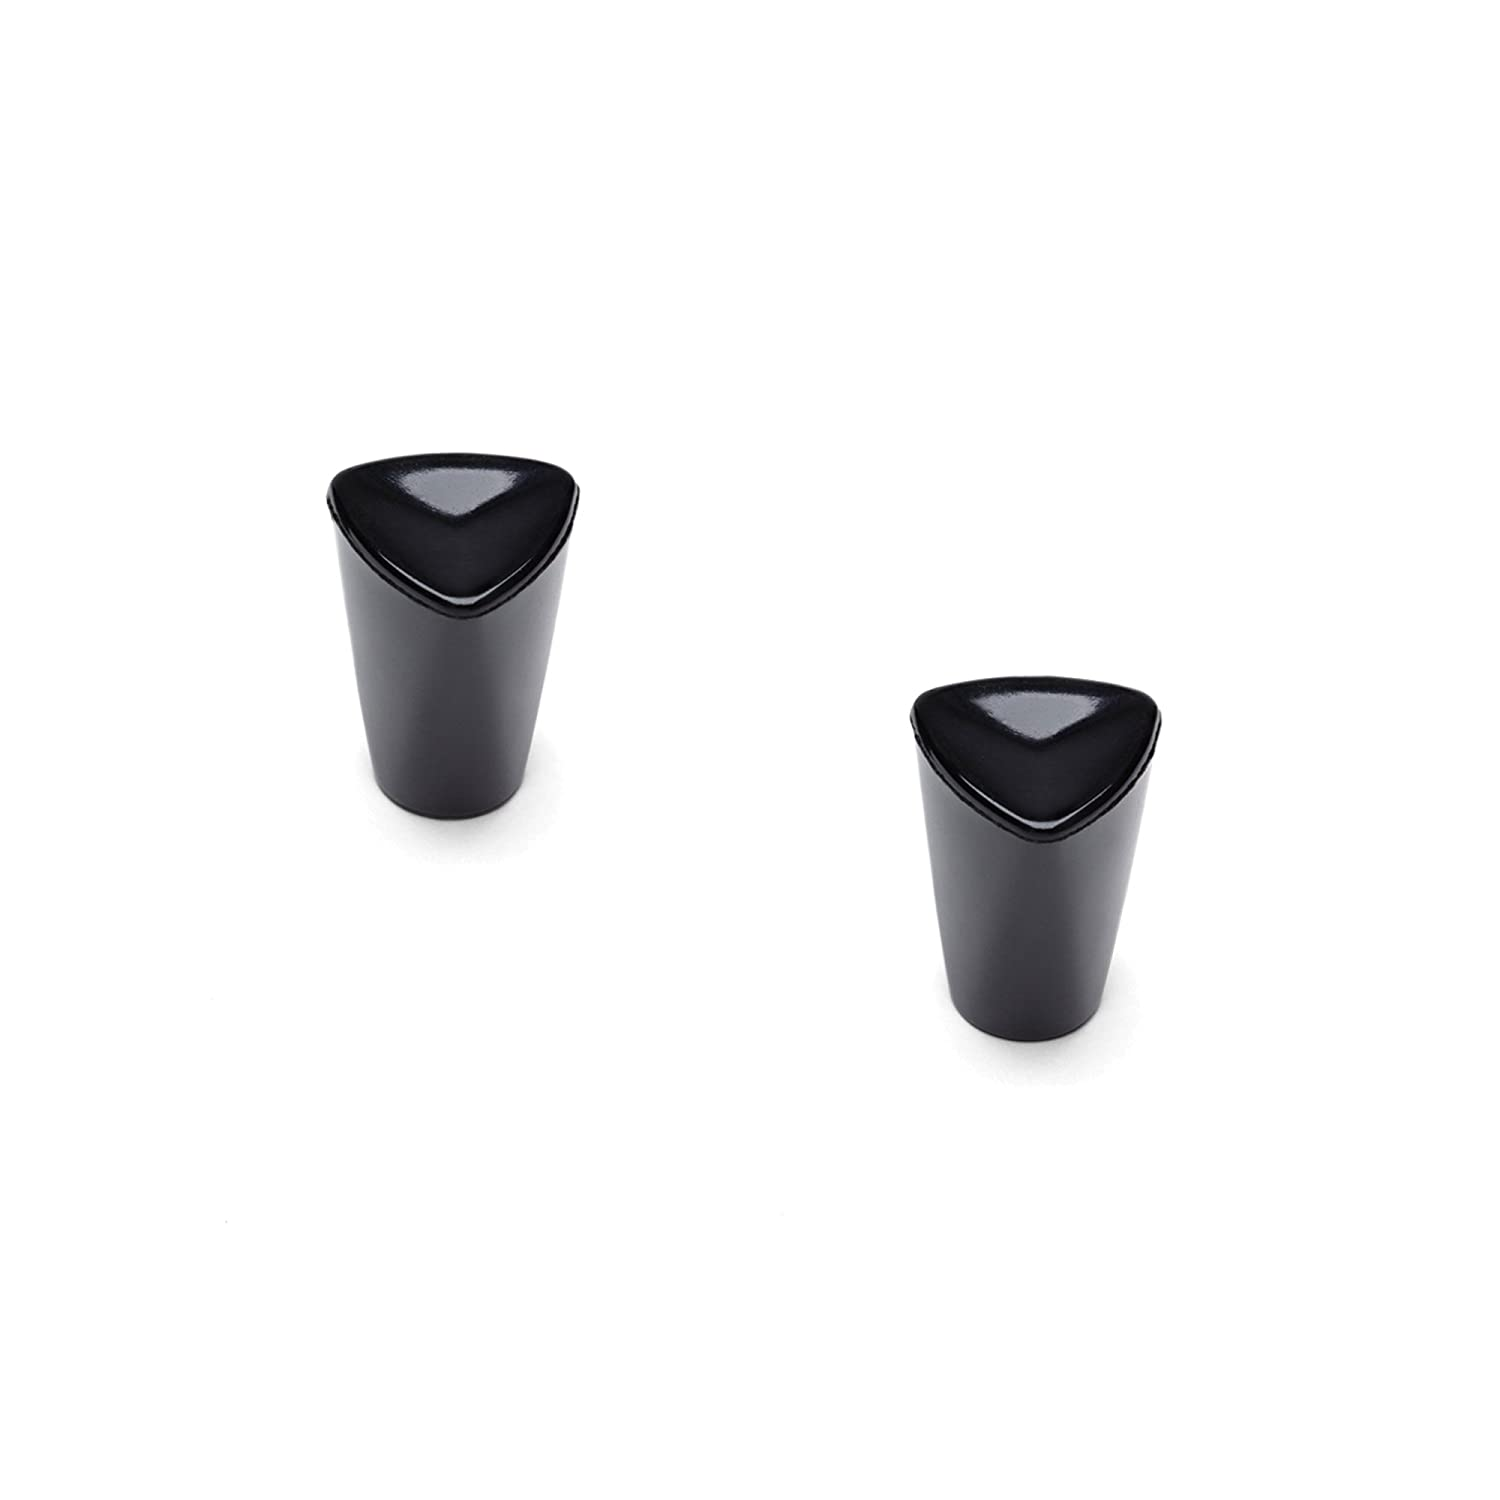 Tops 55706 Fitz-All Replacement Pot Knobs, Tall, Set of 2